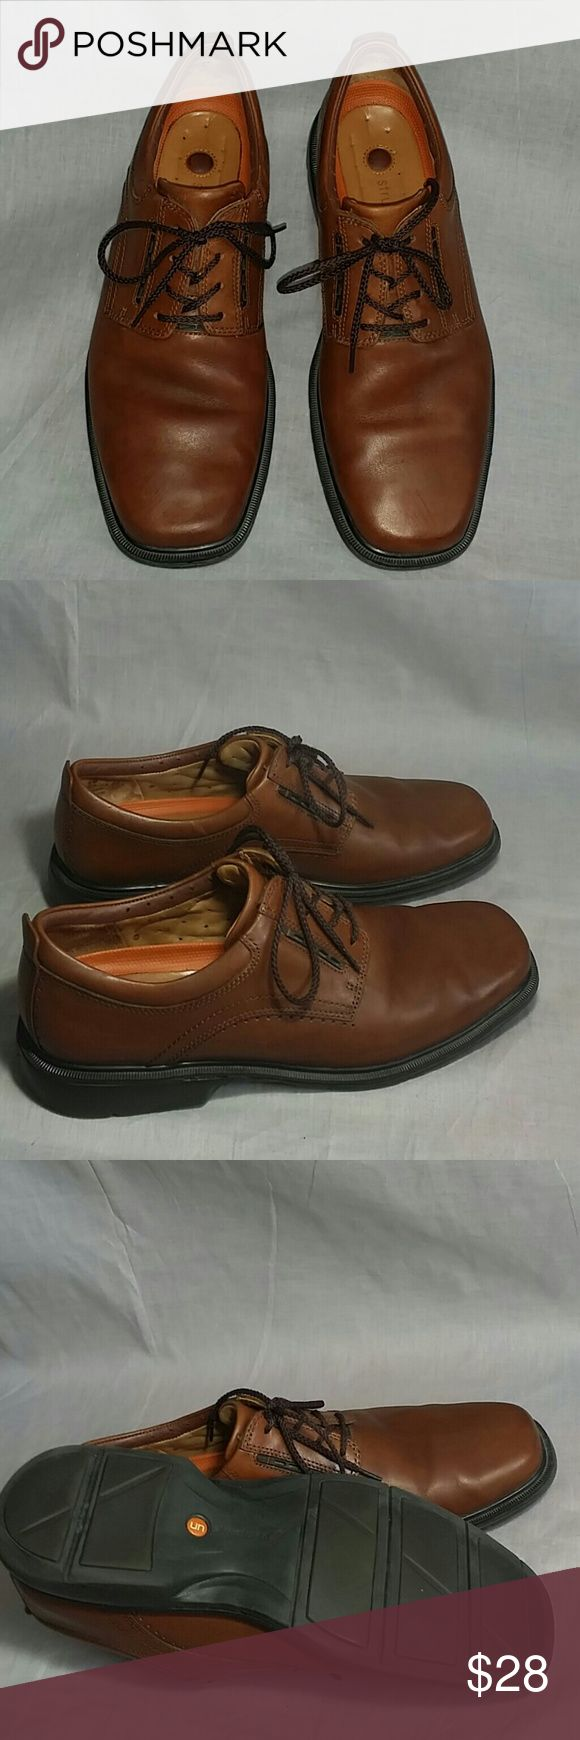 Men's Clarks STRUCTURED Shoes Brown 9 M Leather Item is in a good condition, NO PETS AND SMOKE FREE HOME. Clarks  Shoes